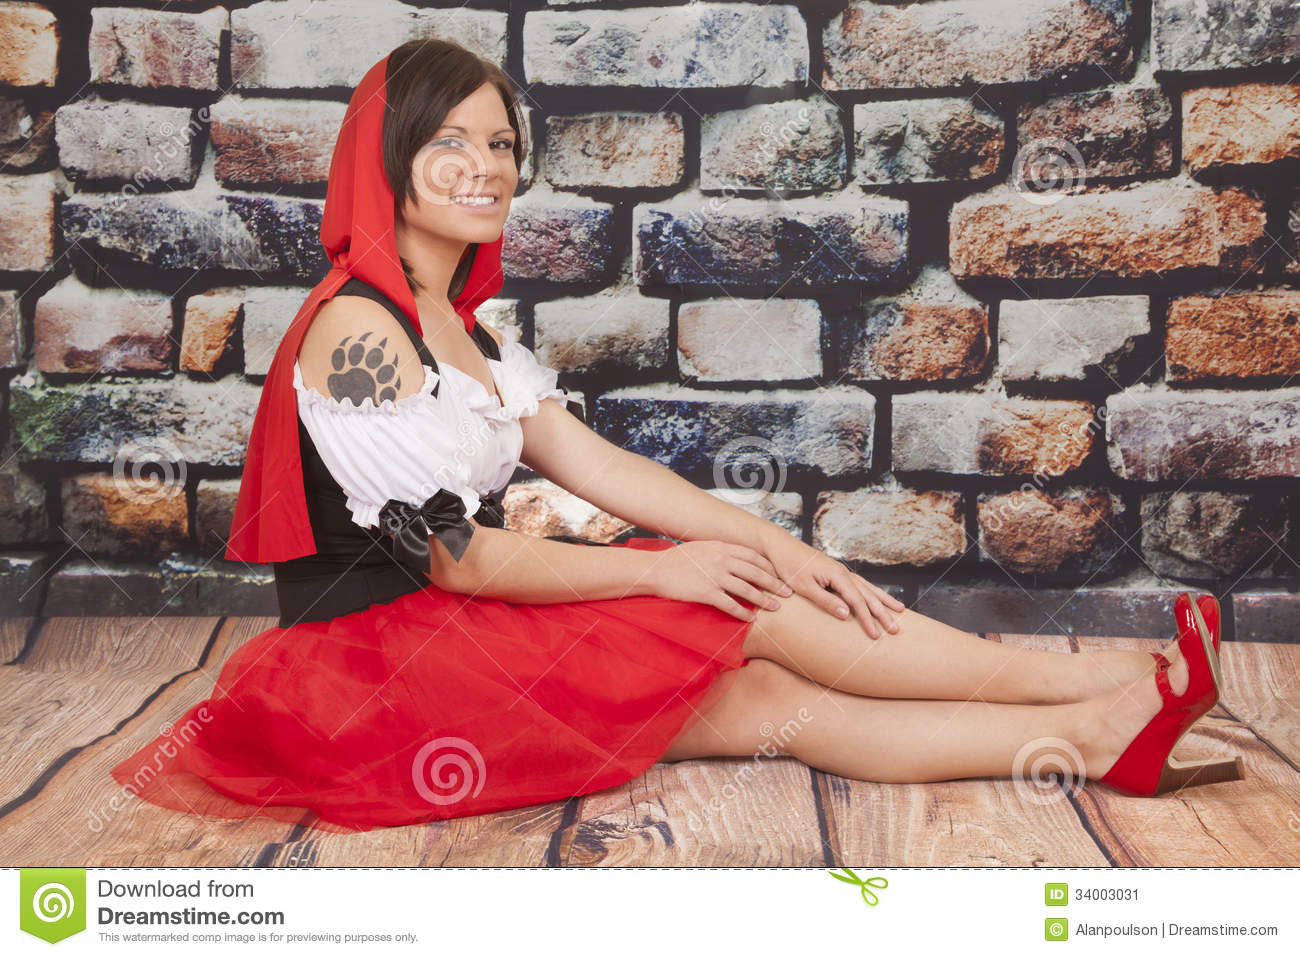 Woman red cape tattoo claw legs out